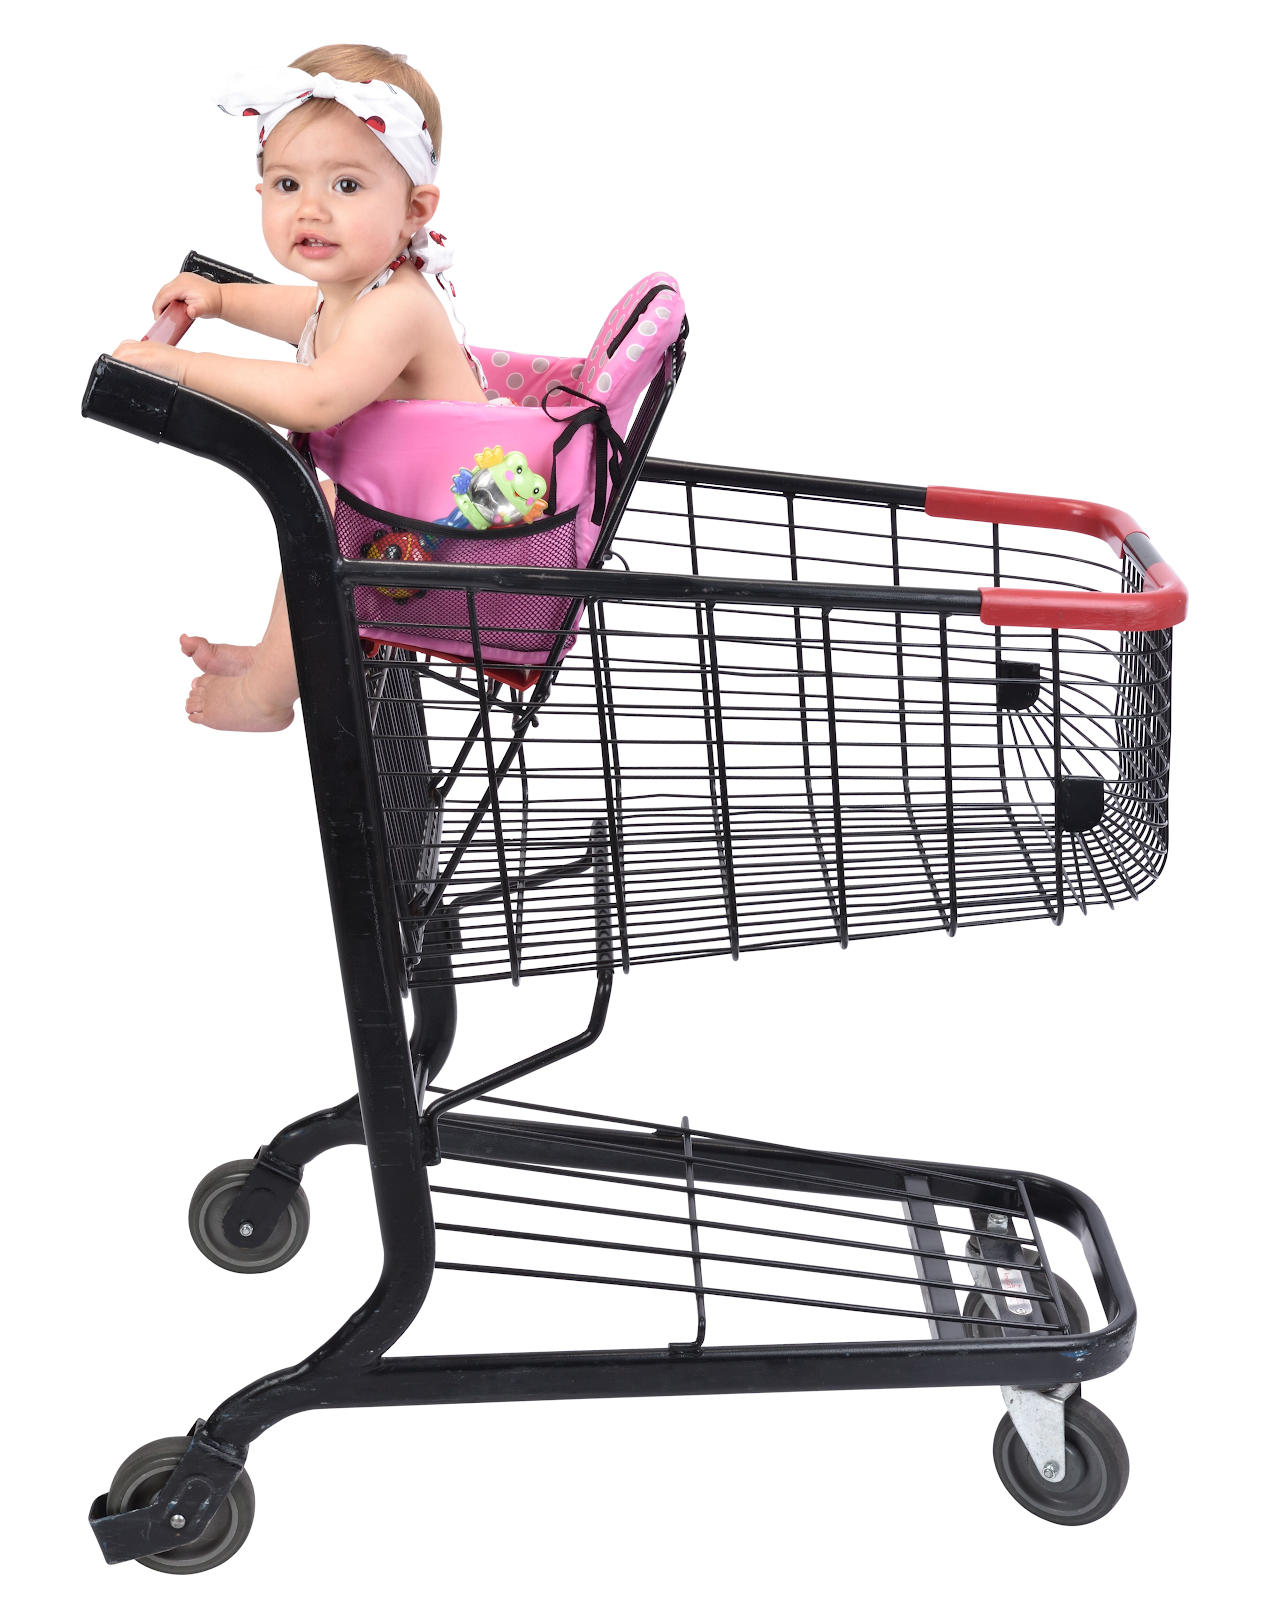 momogo baby in a grocery cart